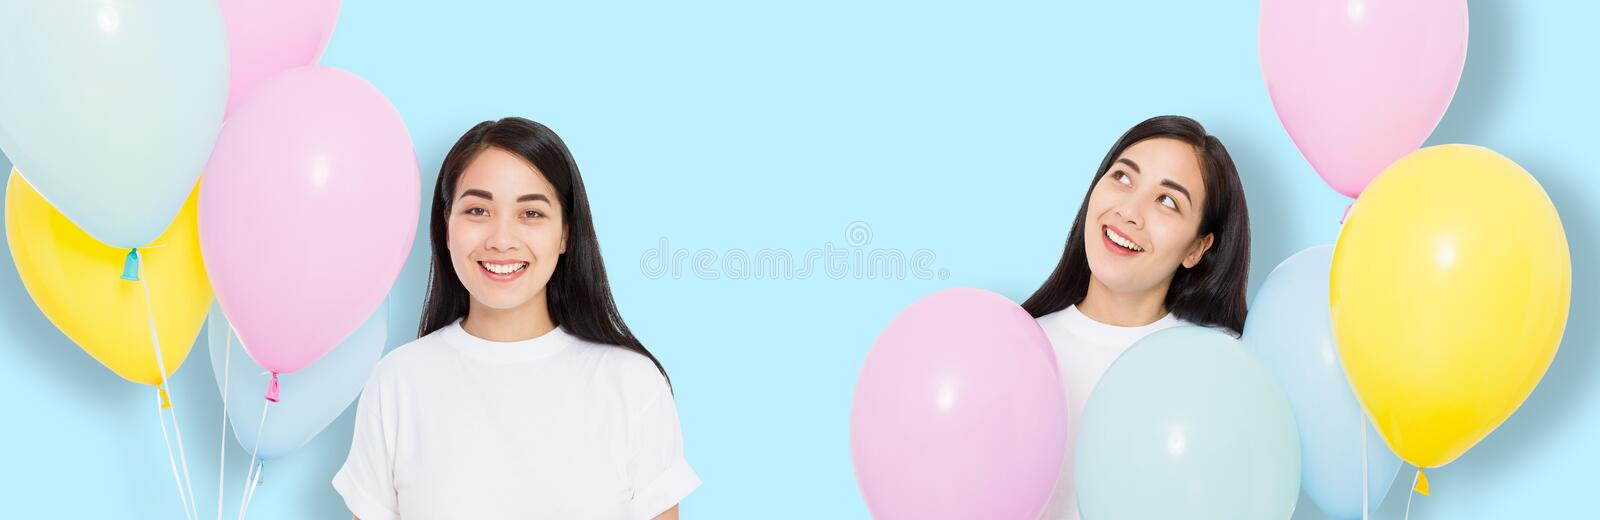 Happy birthday. Balloon party. Happy asian girl with balloons isolated on blue background. Copy space.  stock image